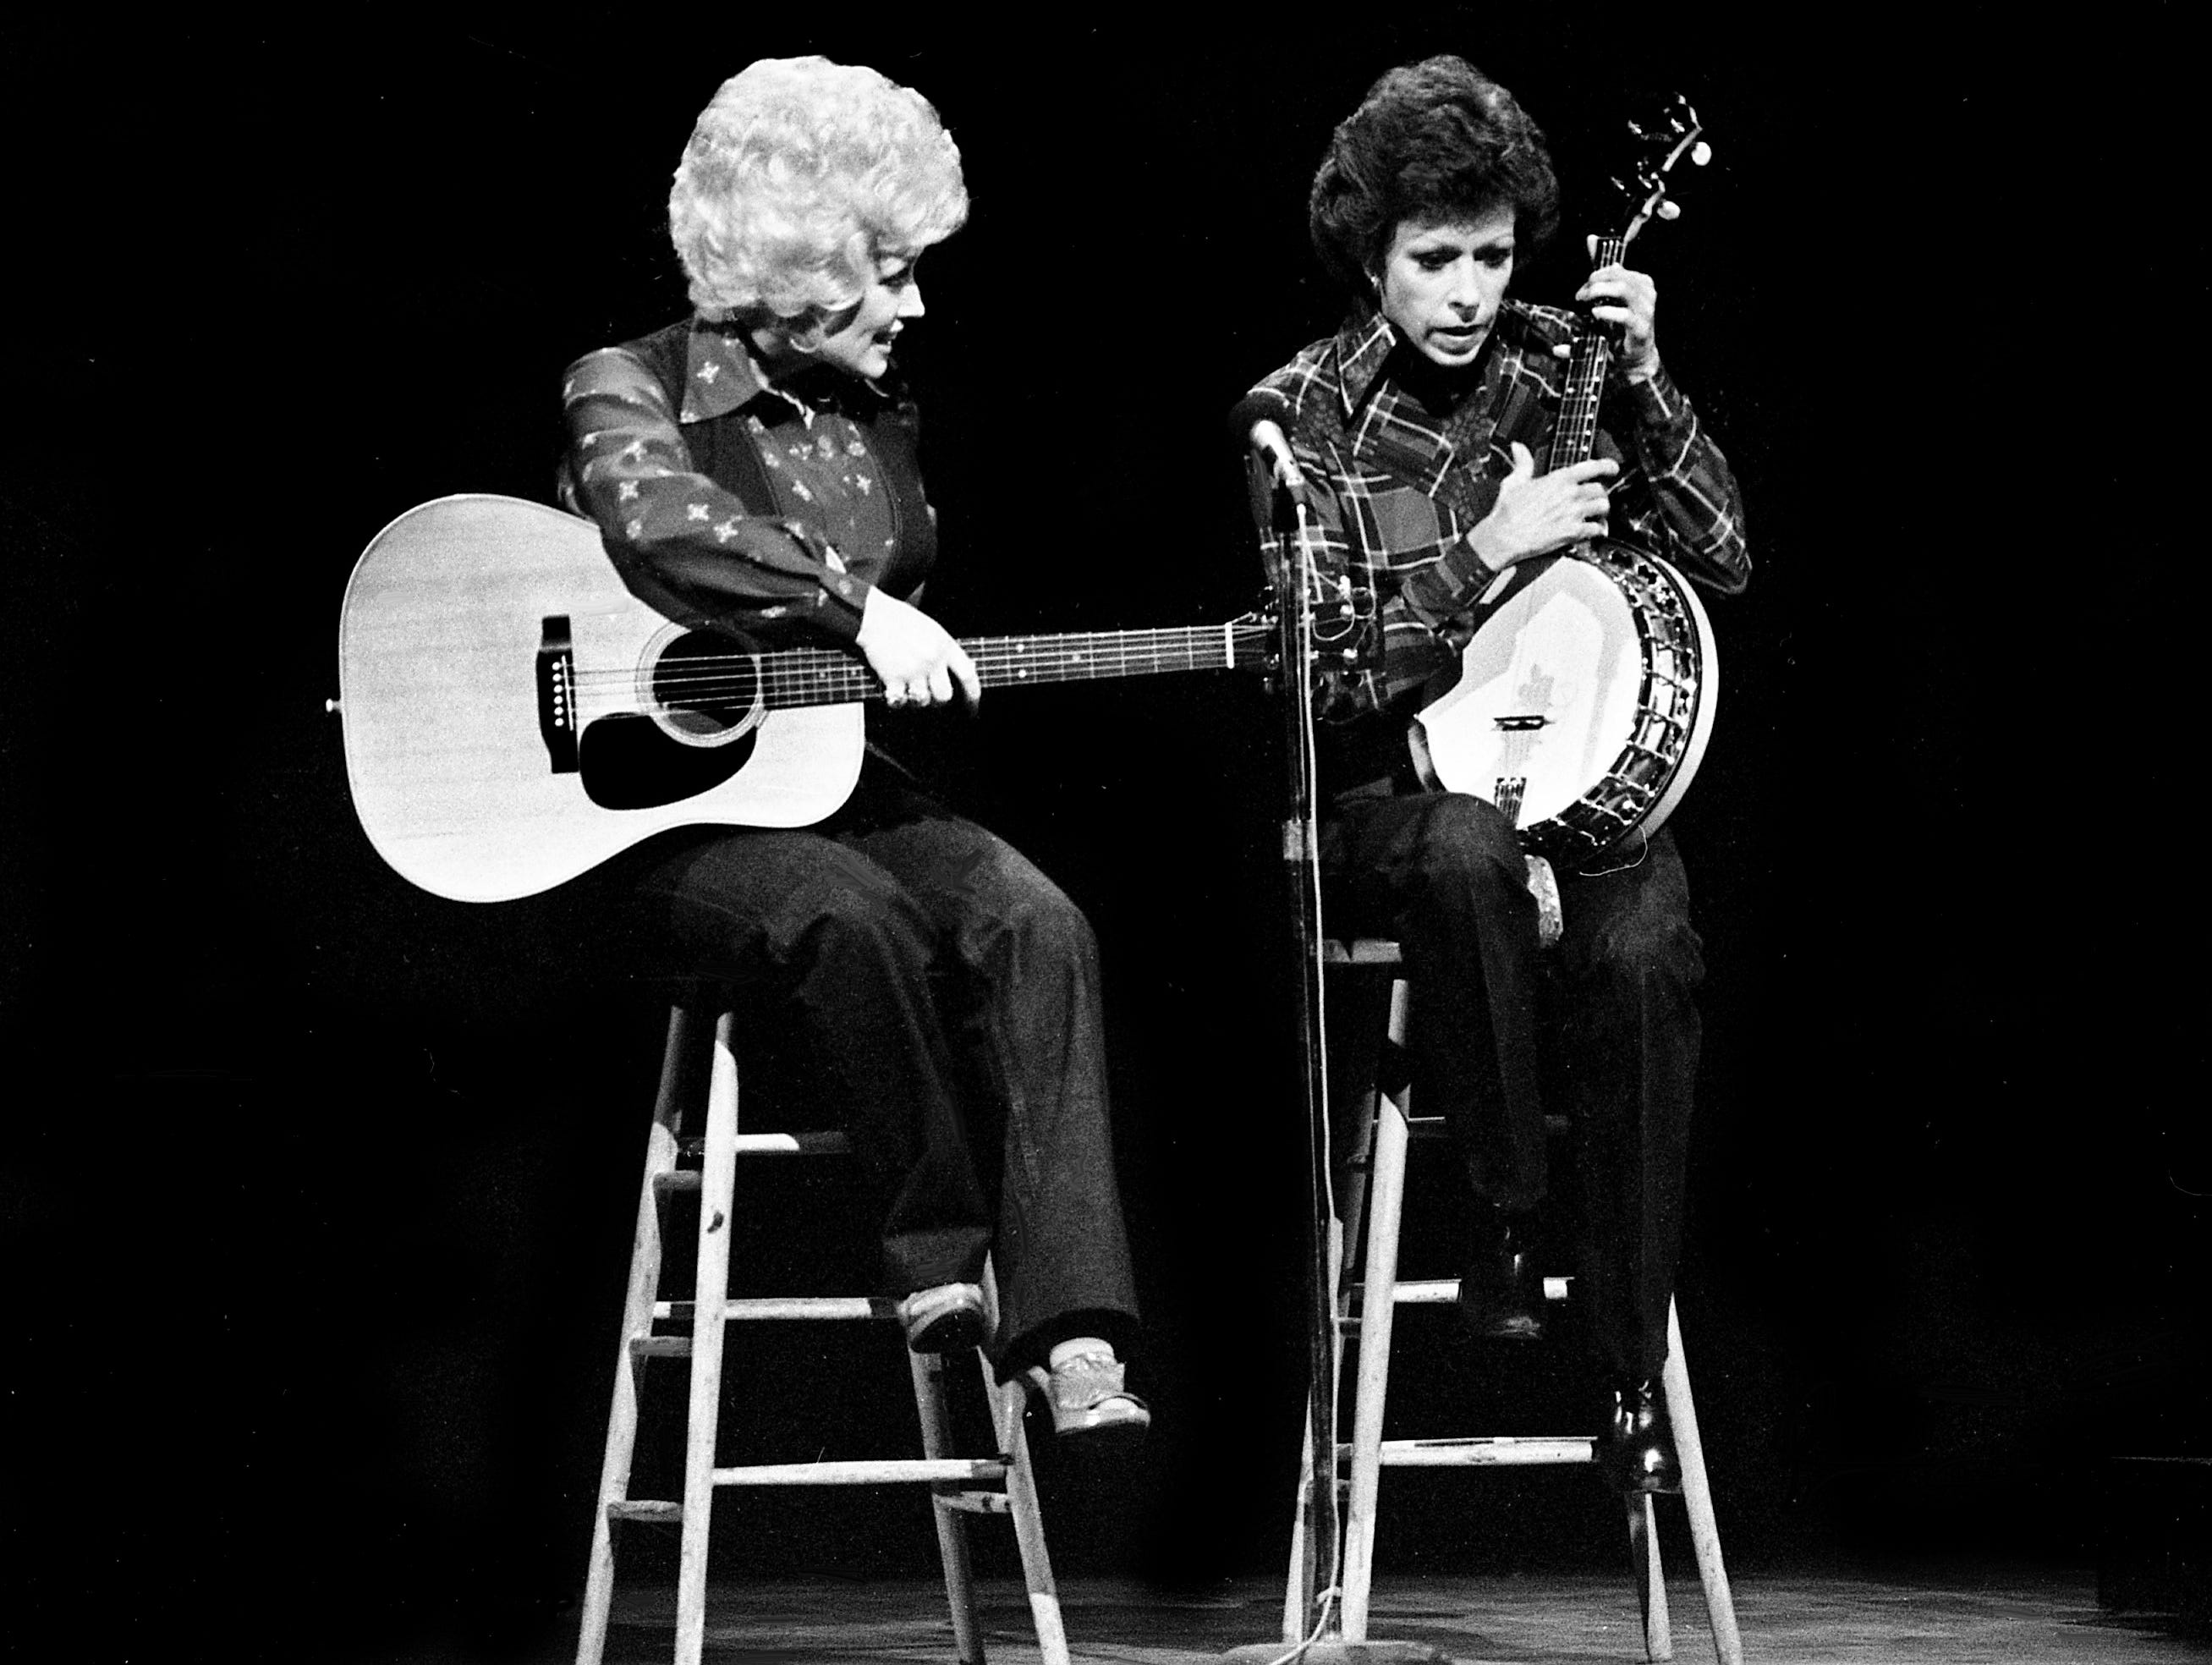 """Dolly Parton, left, looks on as Carol Burnett holds on to the banjo for the """"No one picks like a Nashville picker"""" skit during the taping of the """"Dolly and Carol in Nashville"""" television special before a packed audience at the Grand Ole Opry House Jan. 10, 1979."""